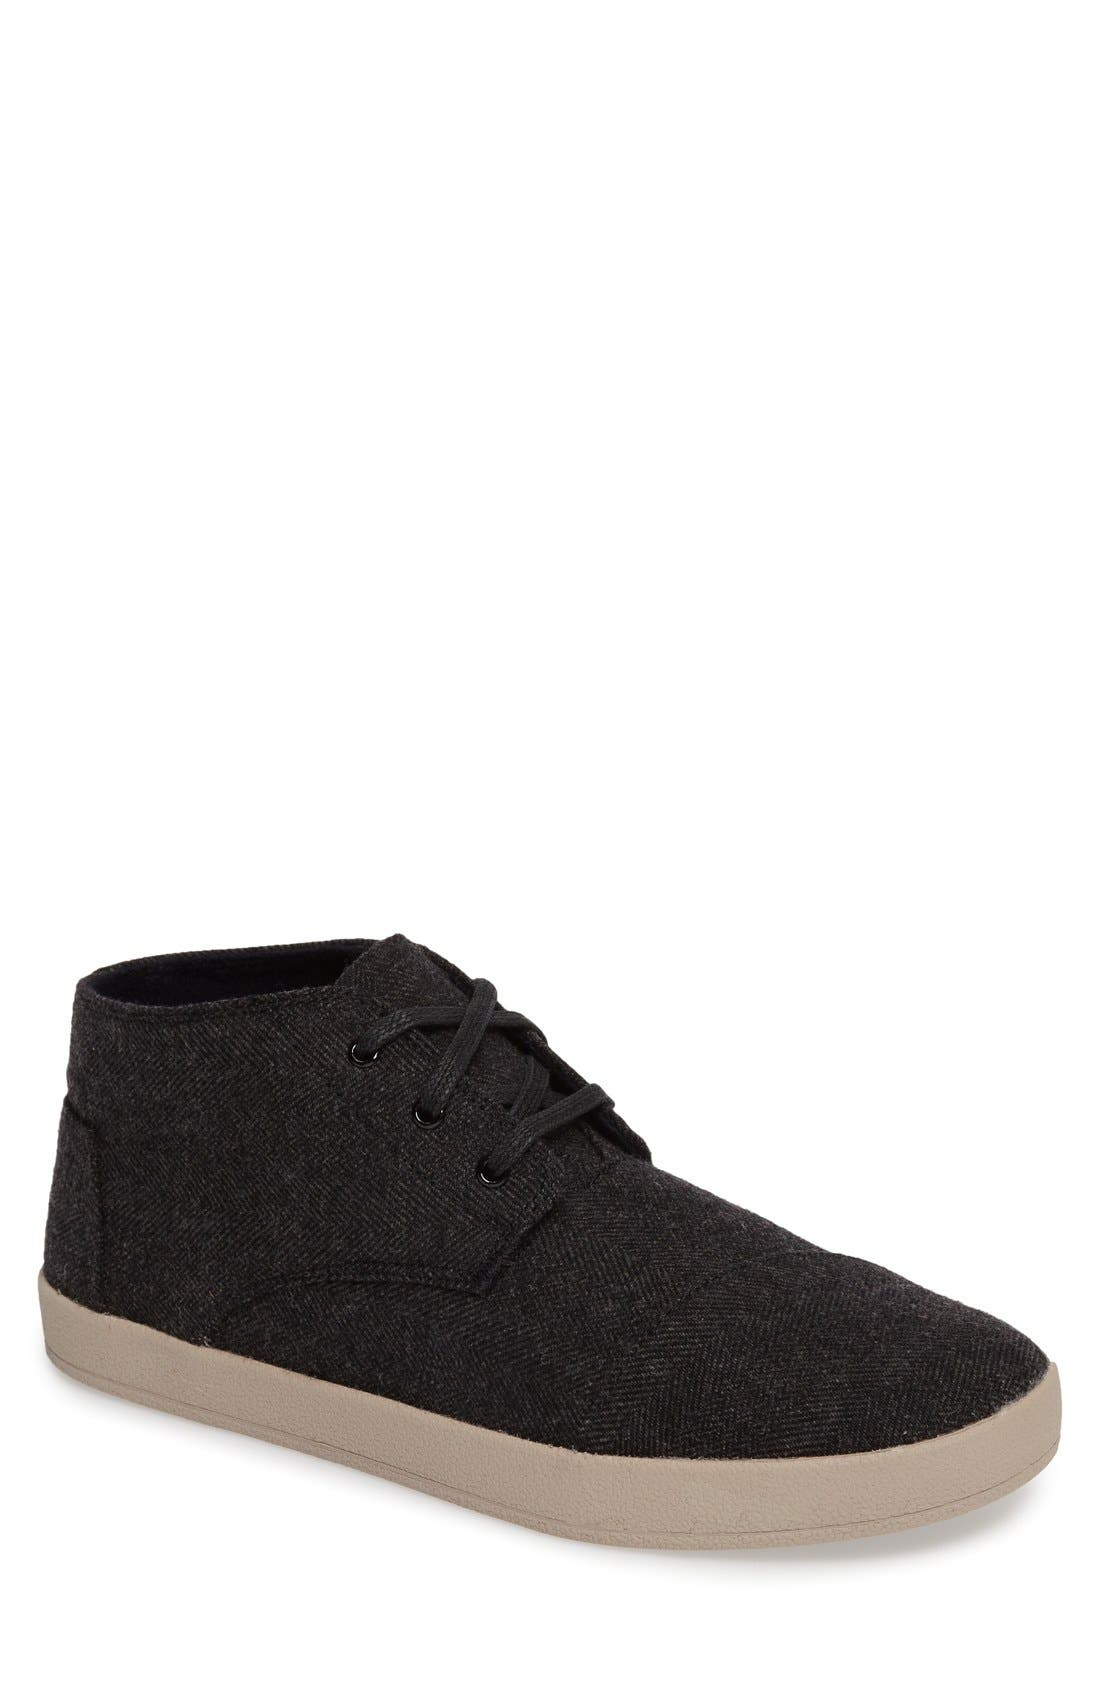 Main Image - TOMS 'Paseo Mid' Sneaker (Men)